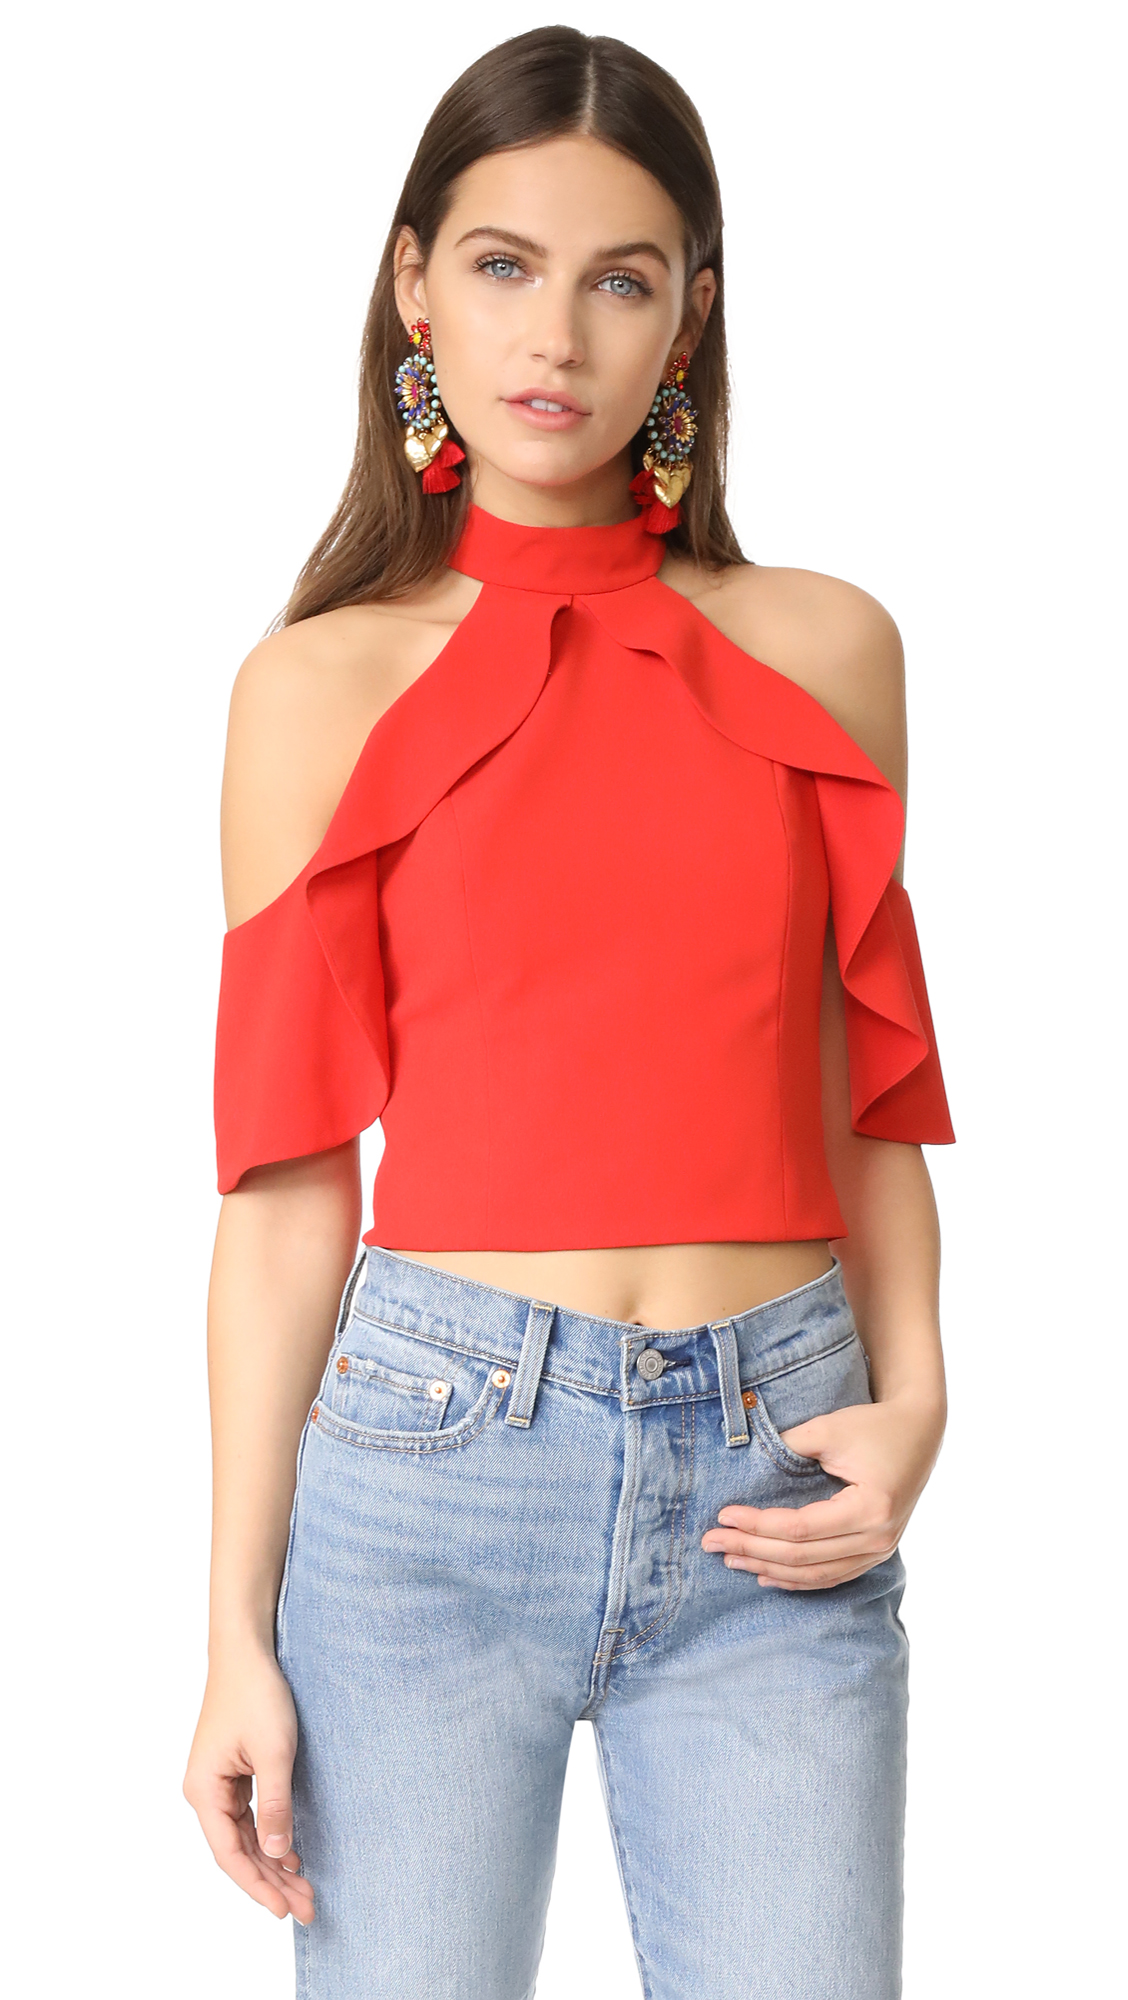 alice + olivia Cabot Cold Shoulder Ruffle Crop Top - Poppy